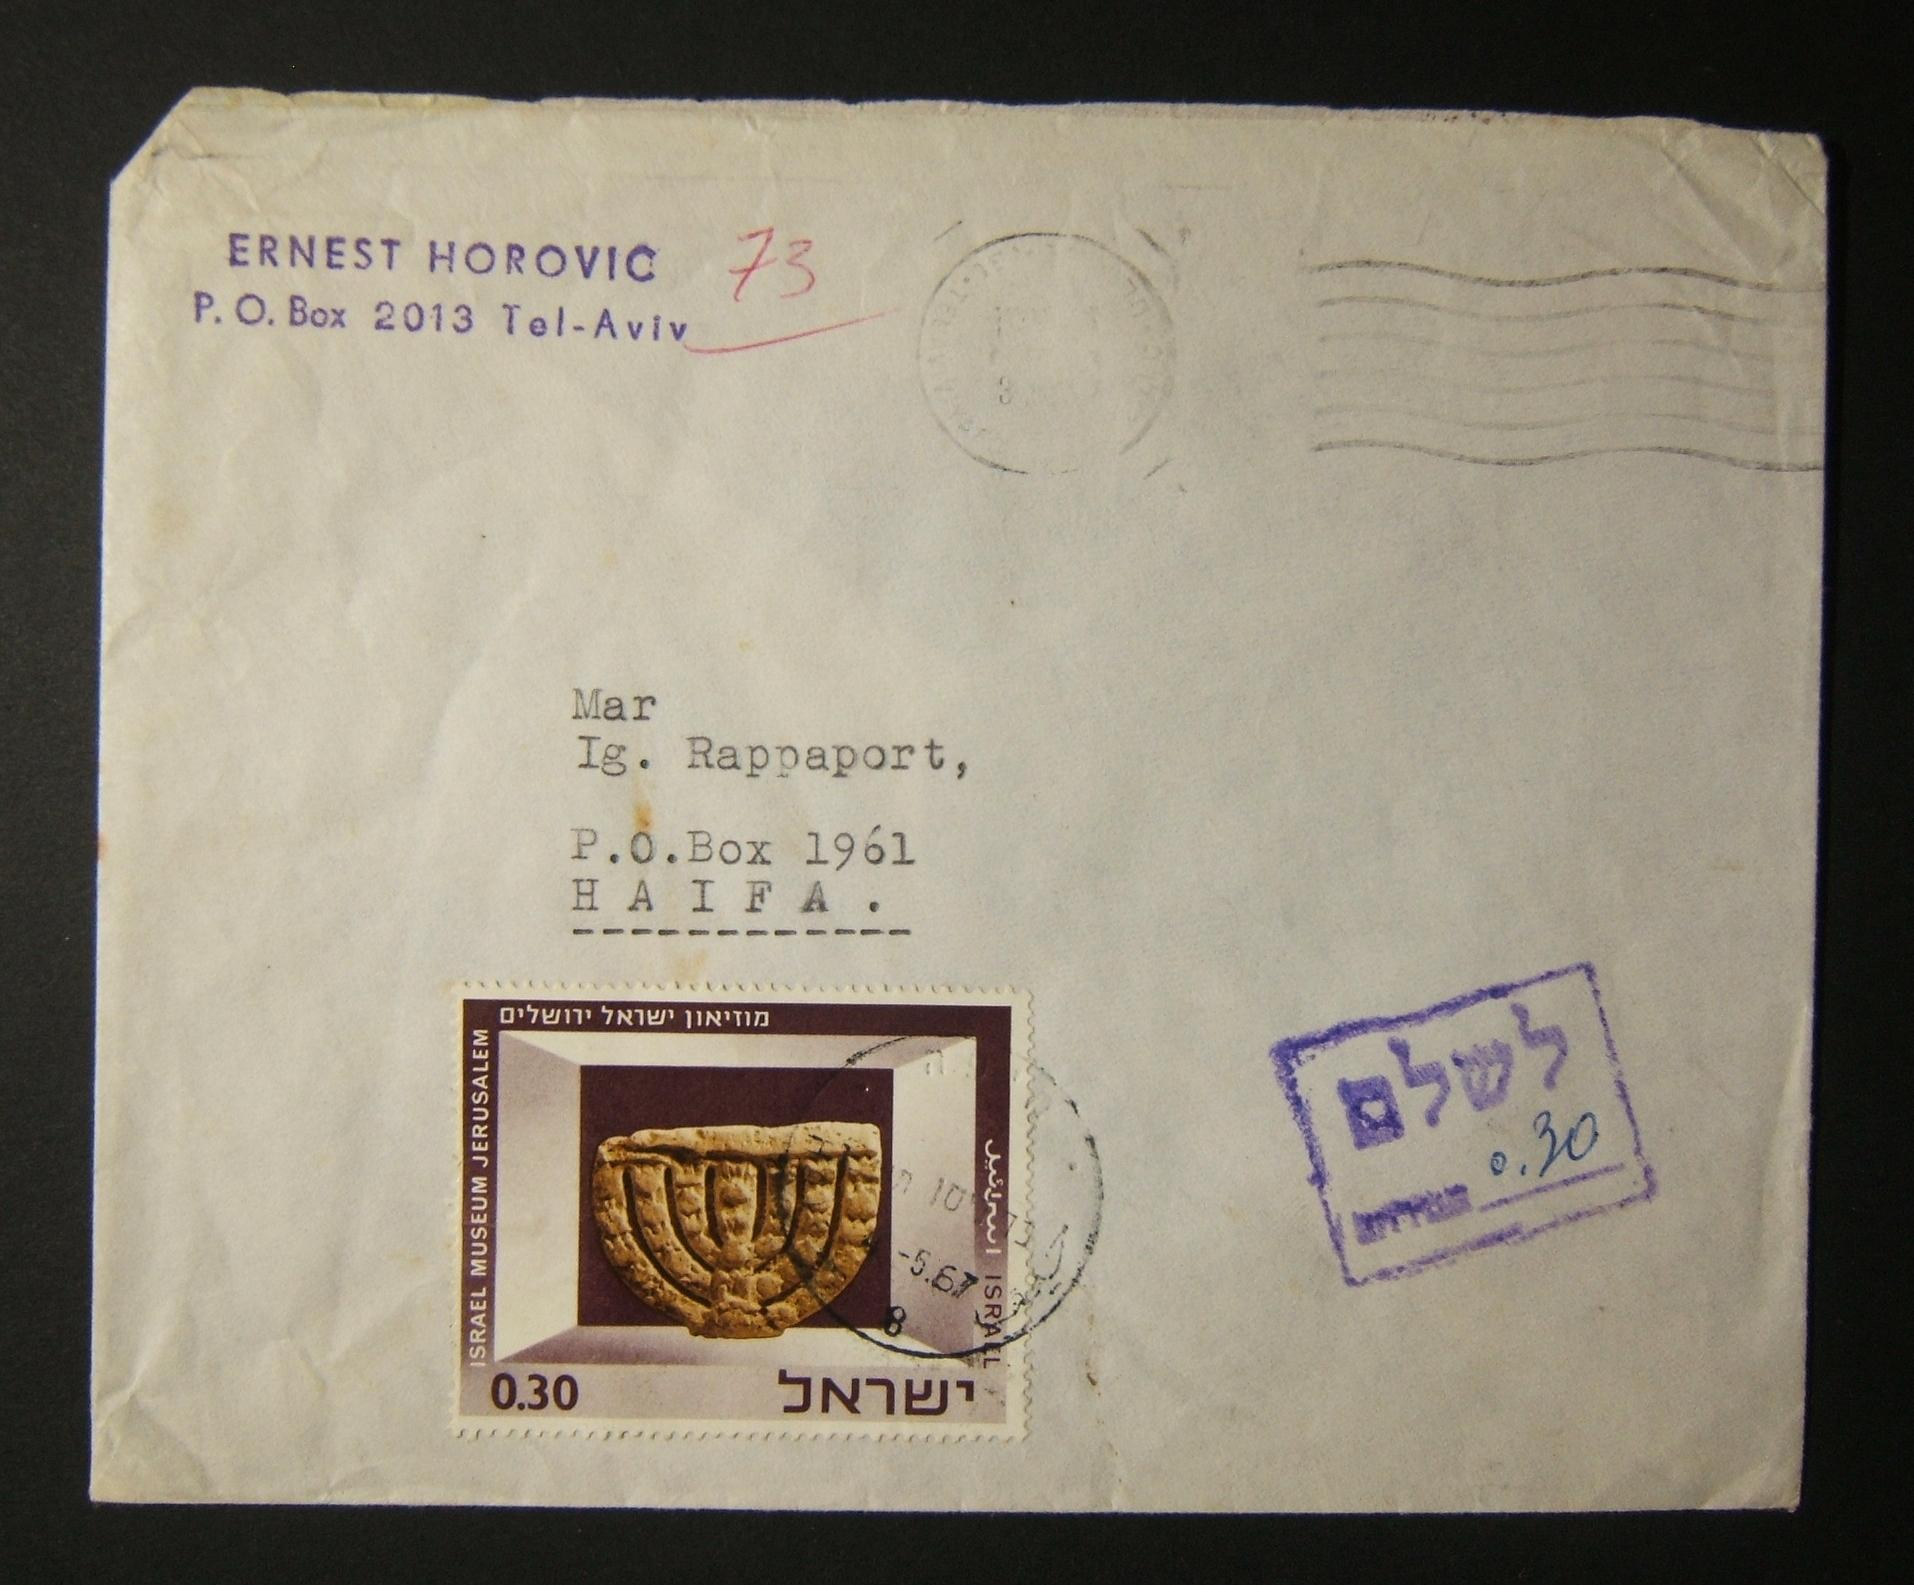 1967 domestic postage due mail: 30-4-67 commercial cover ex TLV to HAIFA mailed unfranked and taxed 30 Agorot (double the period 15 Ag letter rate), paid using 1966 Israel Museum B